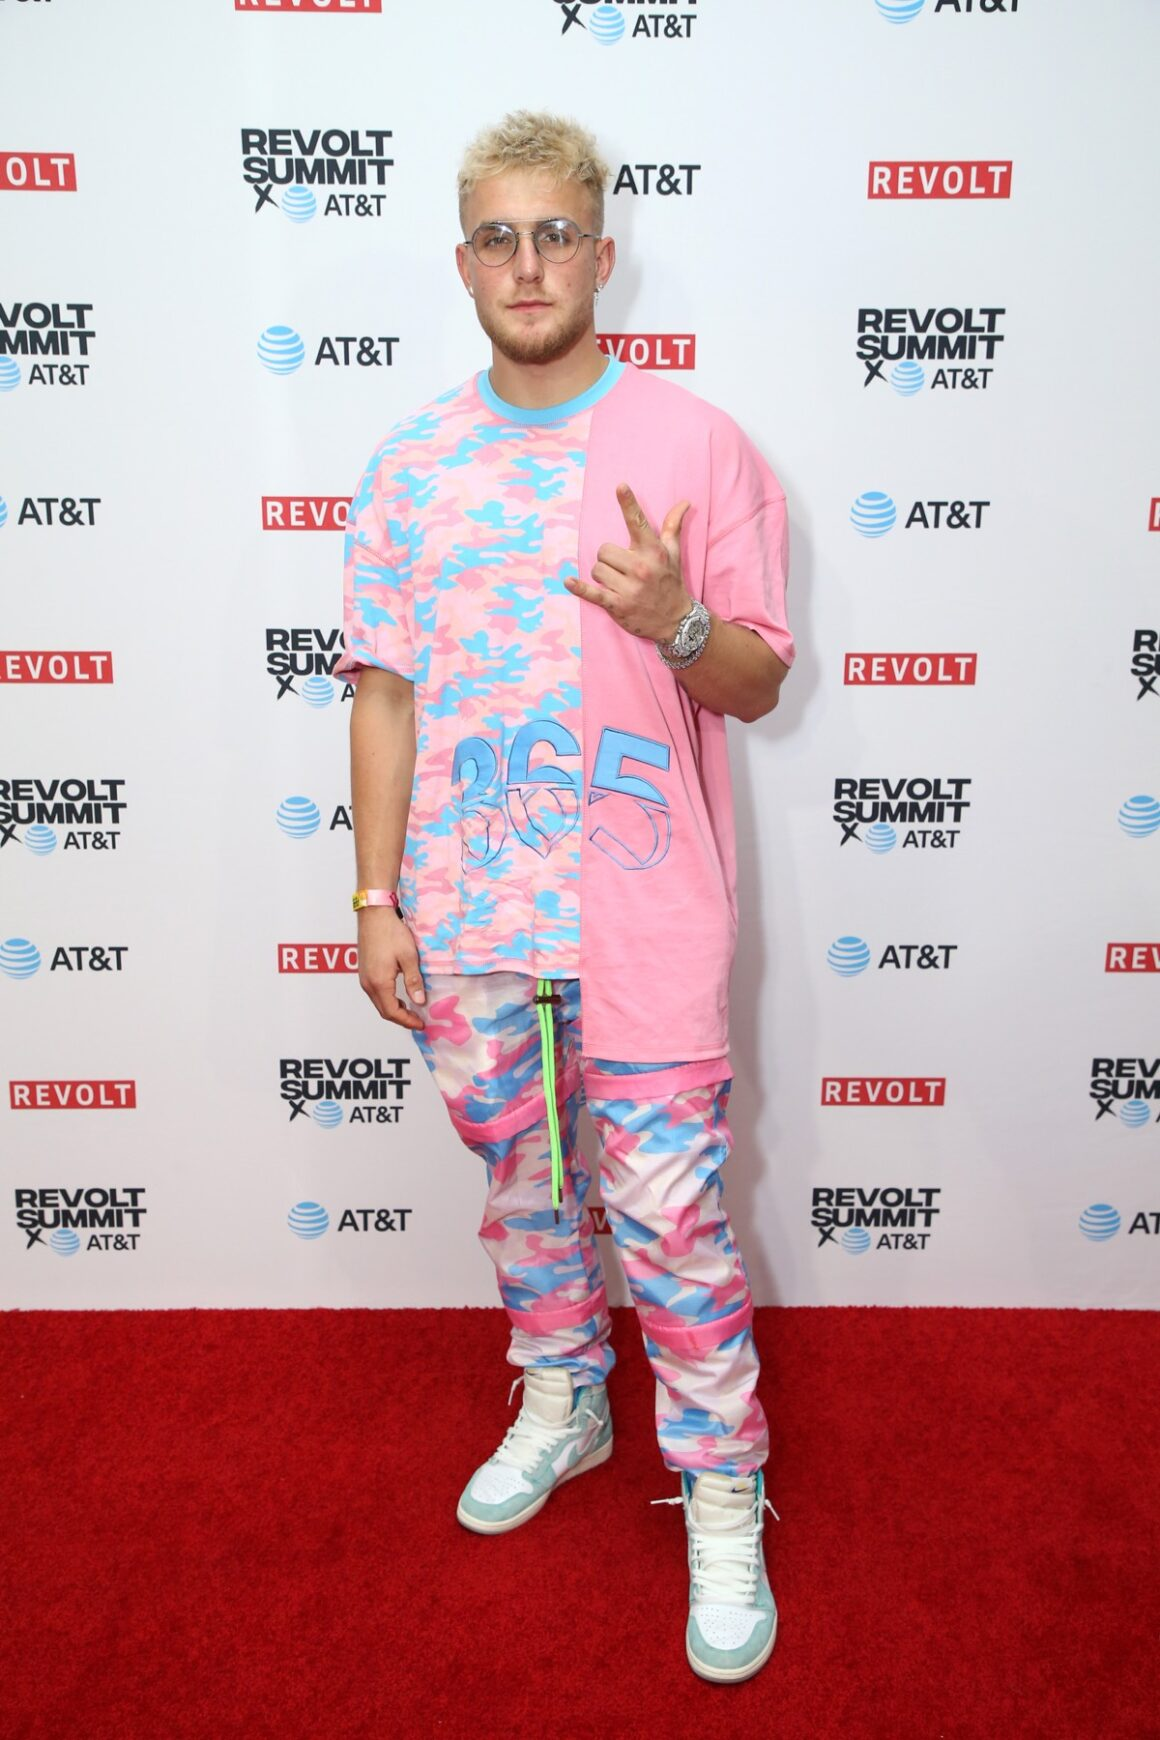 Jake Paul REVOLT X AT&T Host REVOLT 3-Day Summit In Los Angeles - Day 2